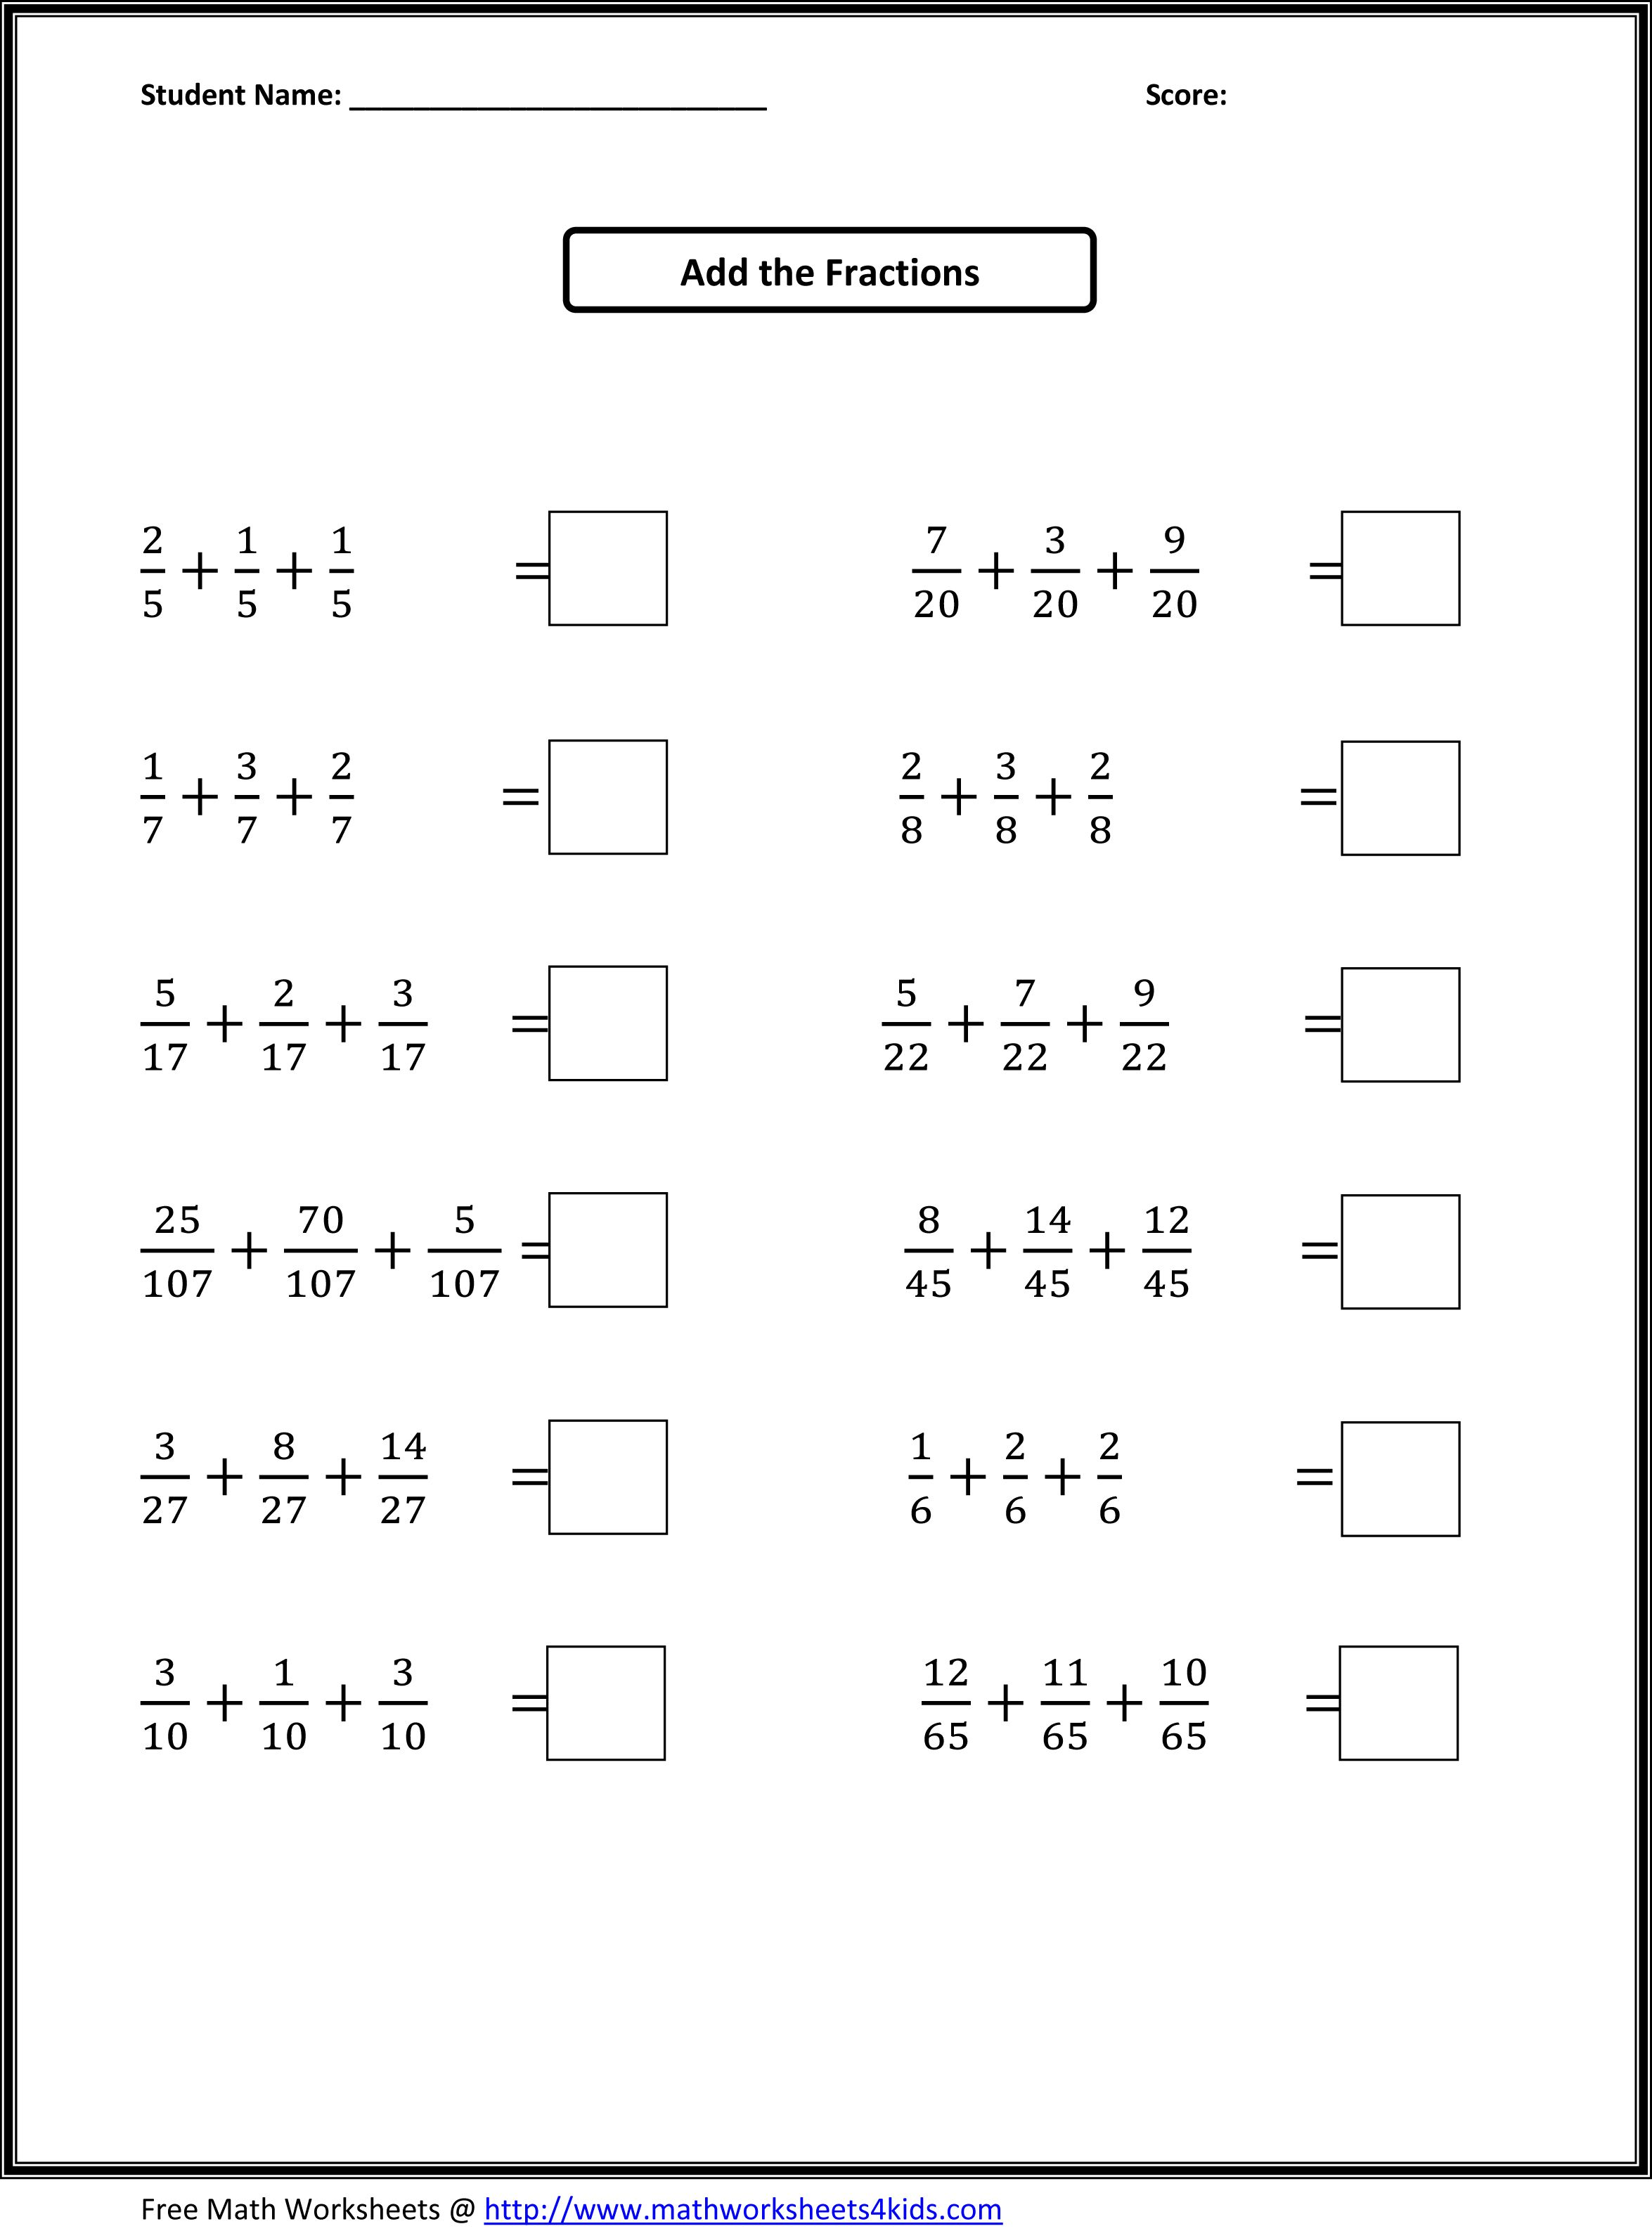 Fractions Worksheet Grade 4 Scalien – Free Math Worksheets Grade 7